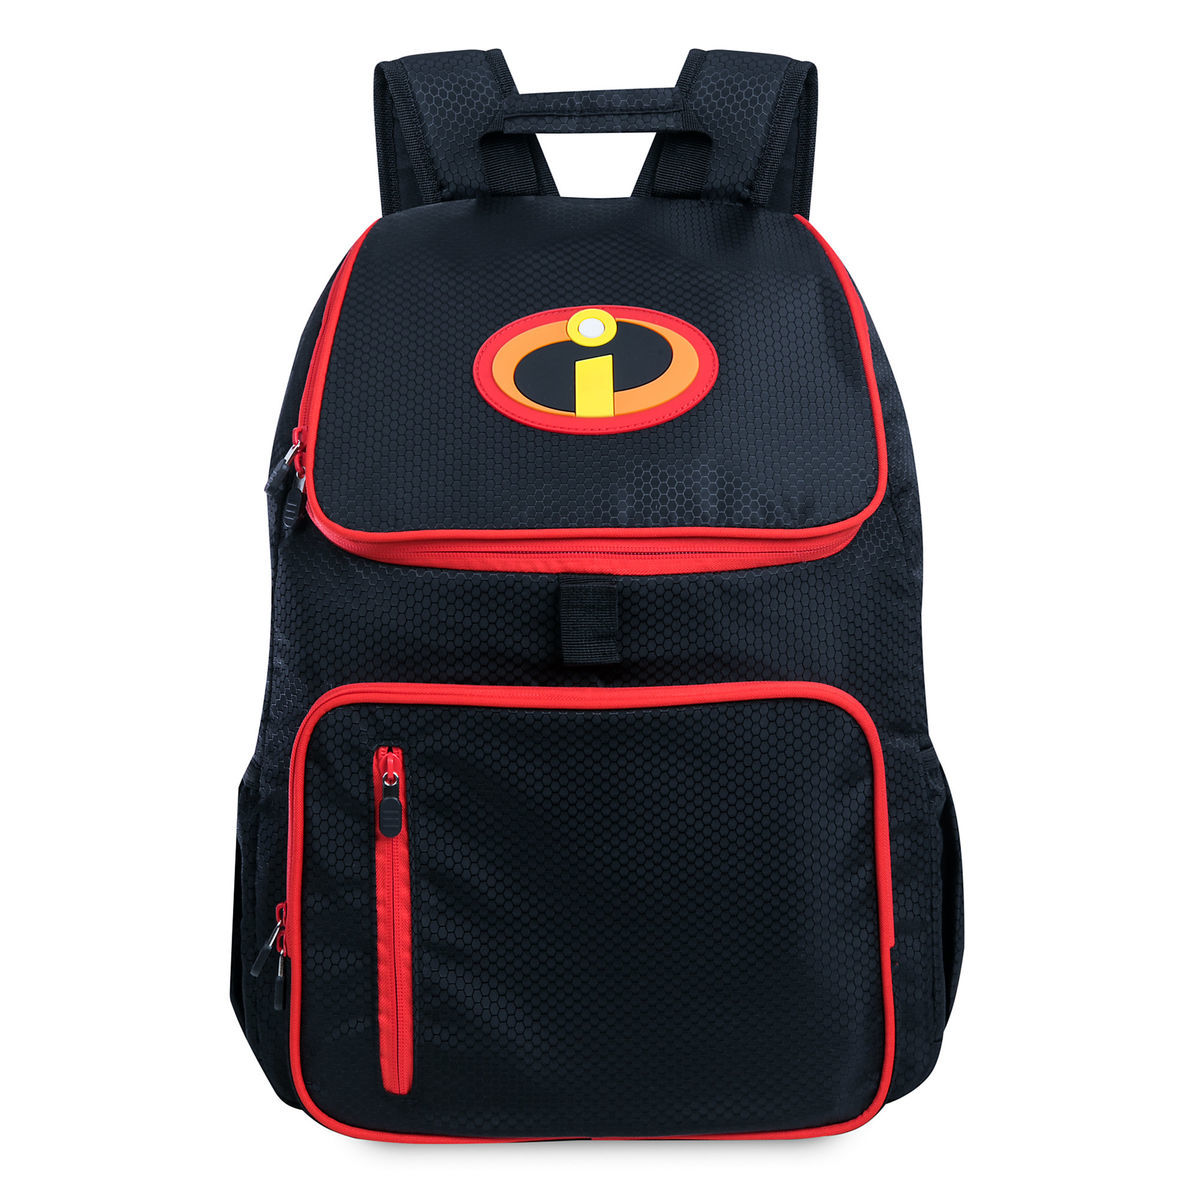 b057c0cf03f8 Product Image of Incredibles 2 Backpack - Personalizable   1